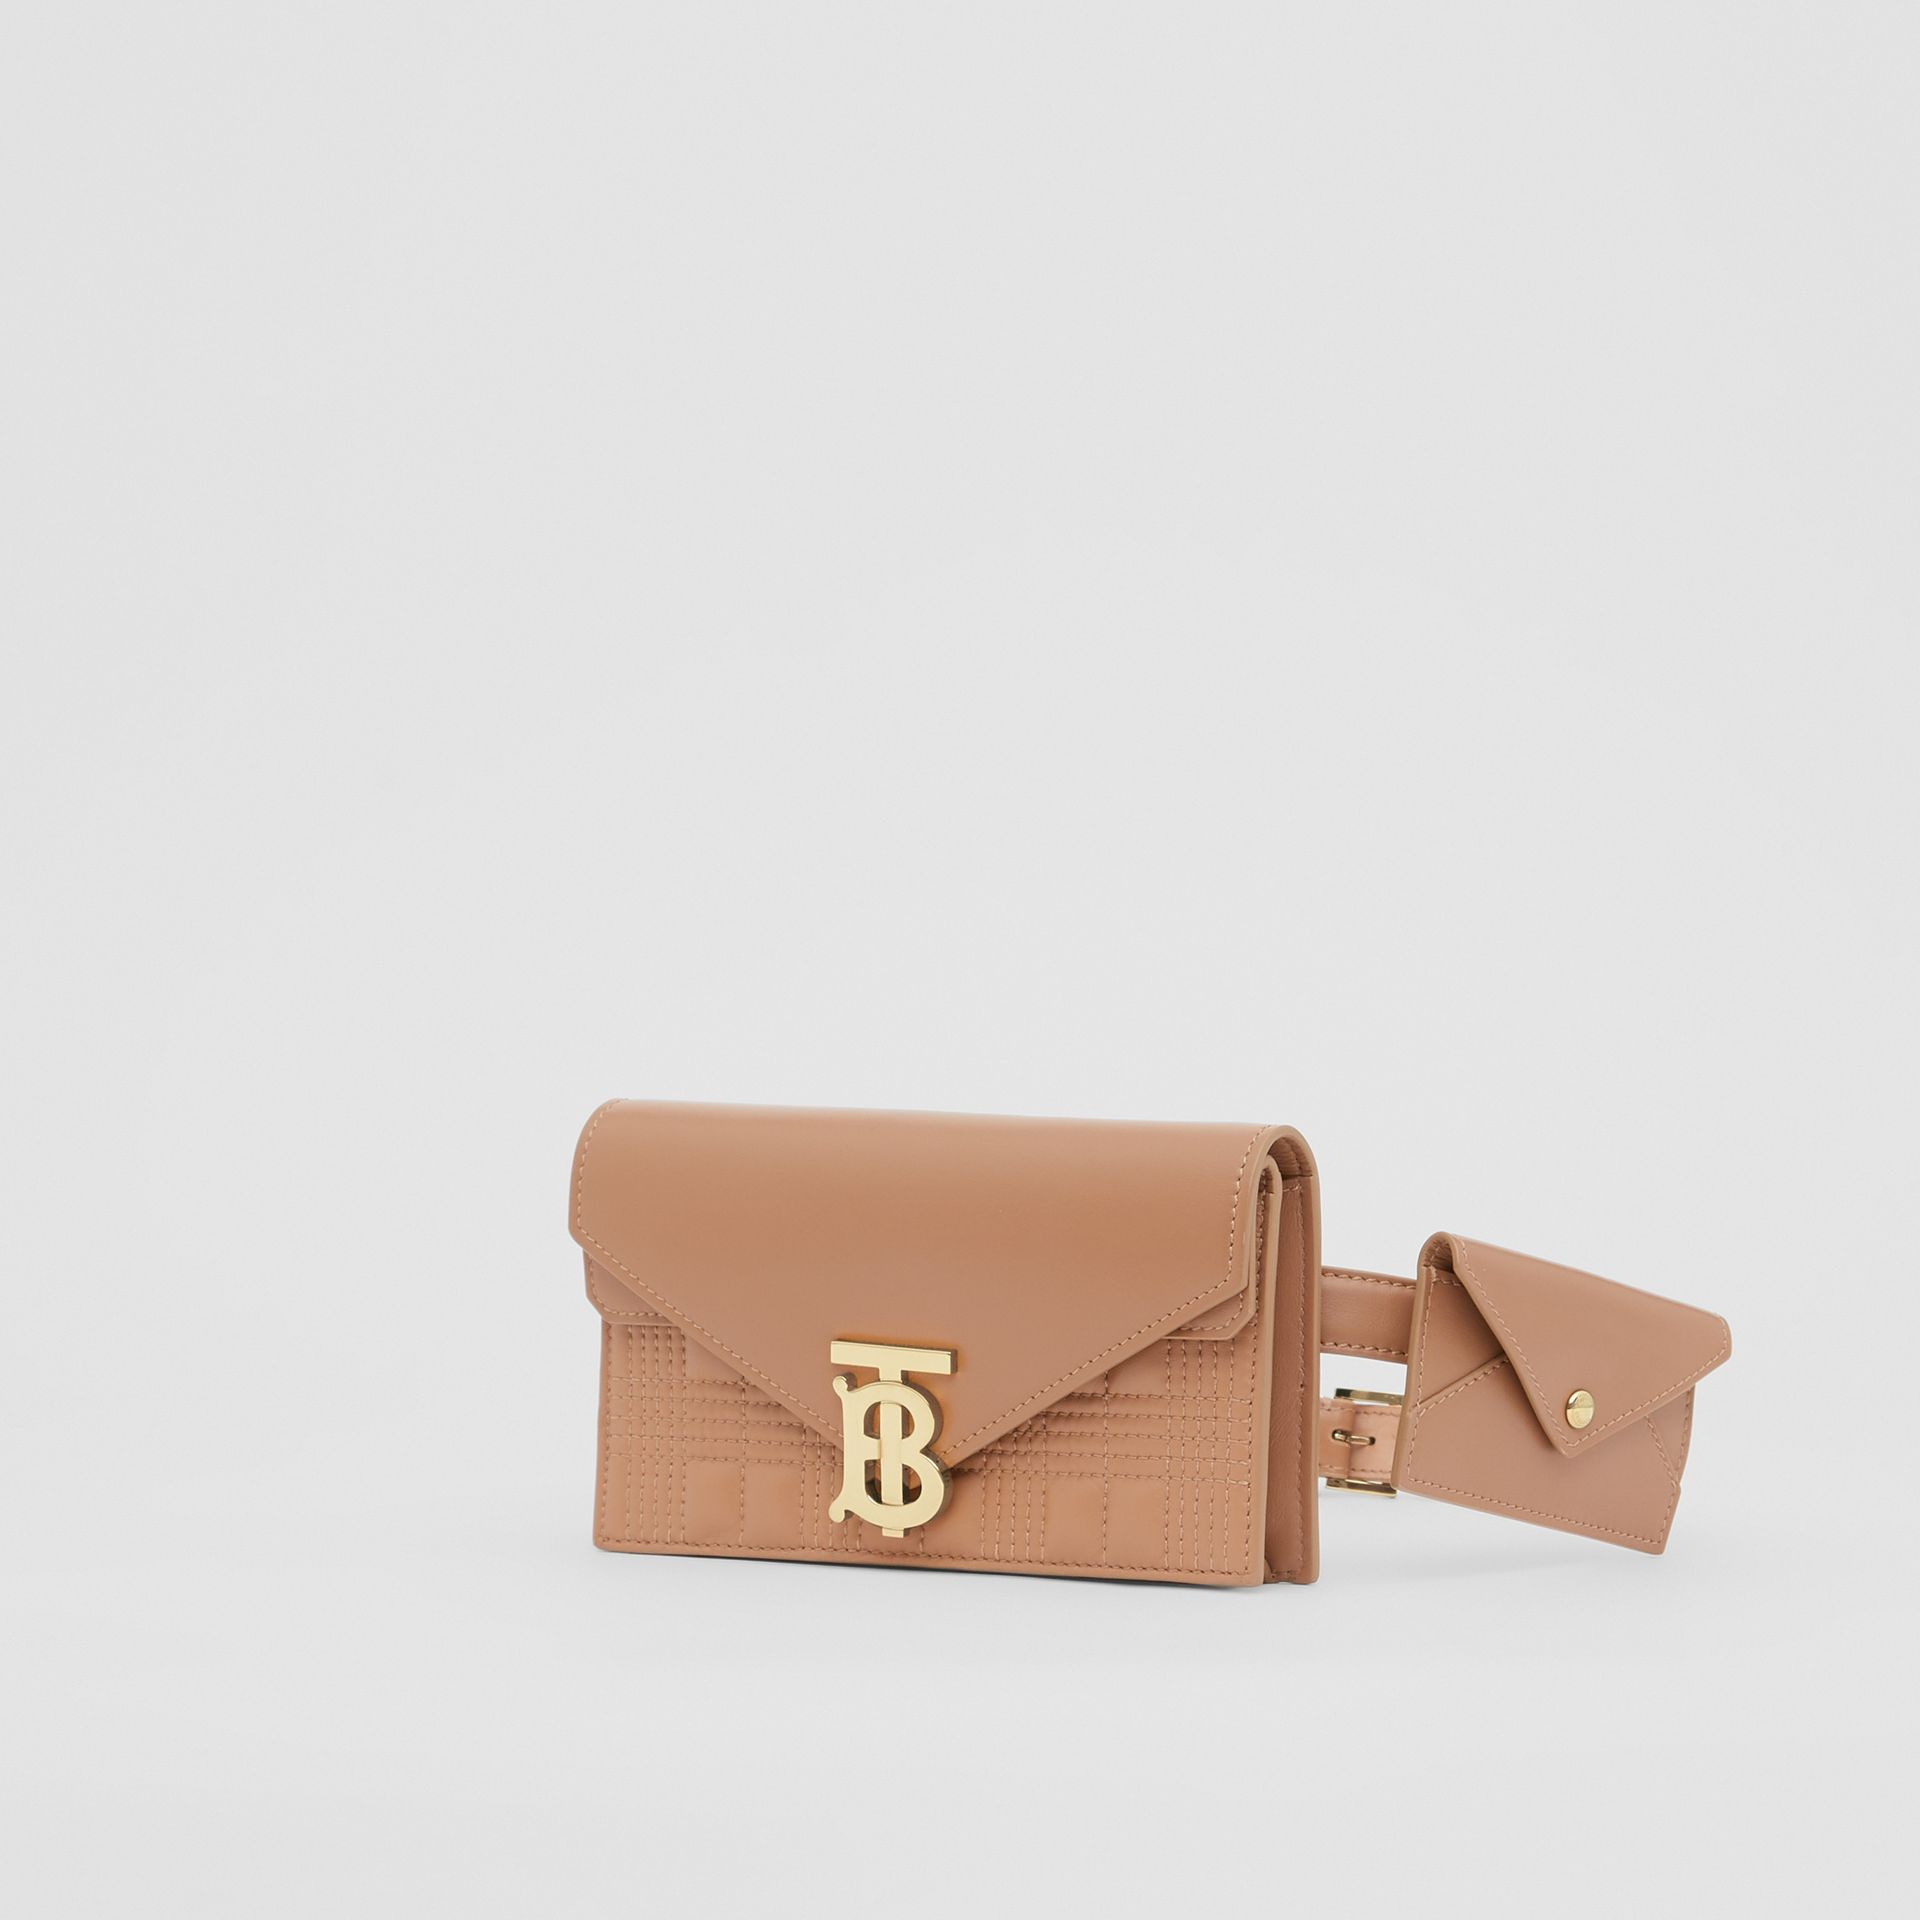 Belted Quilted Lambskin TB Envelope Clutch in Warm Camel - Women | Burberry Canada - gallery image 6